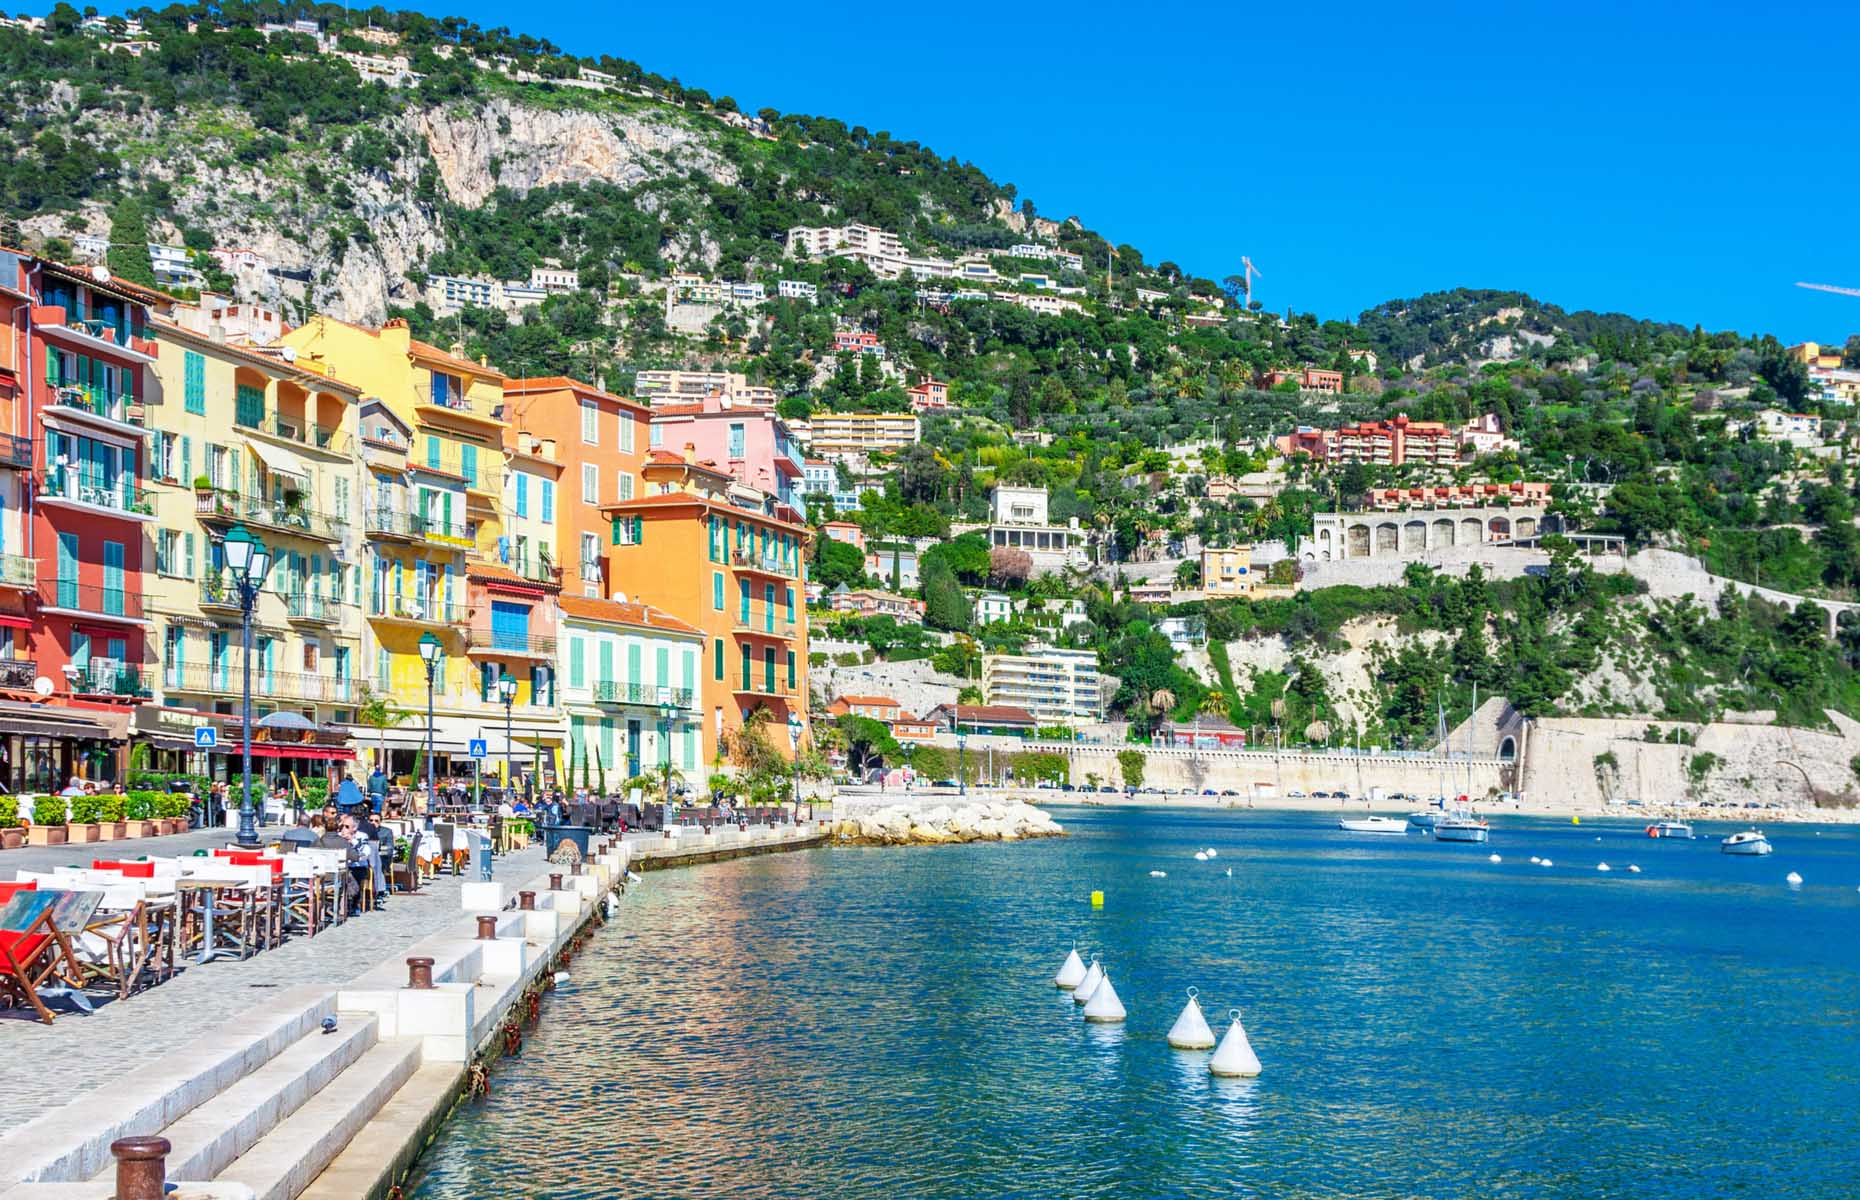 Waterfront in Nice, France (Image: kerenby/Shutterstock)